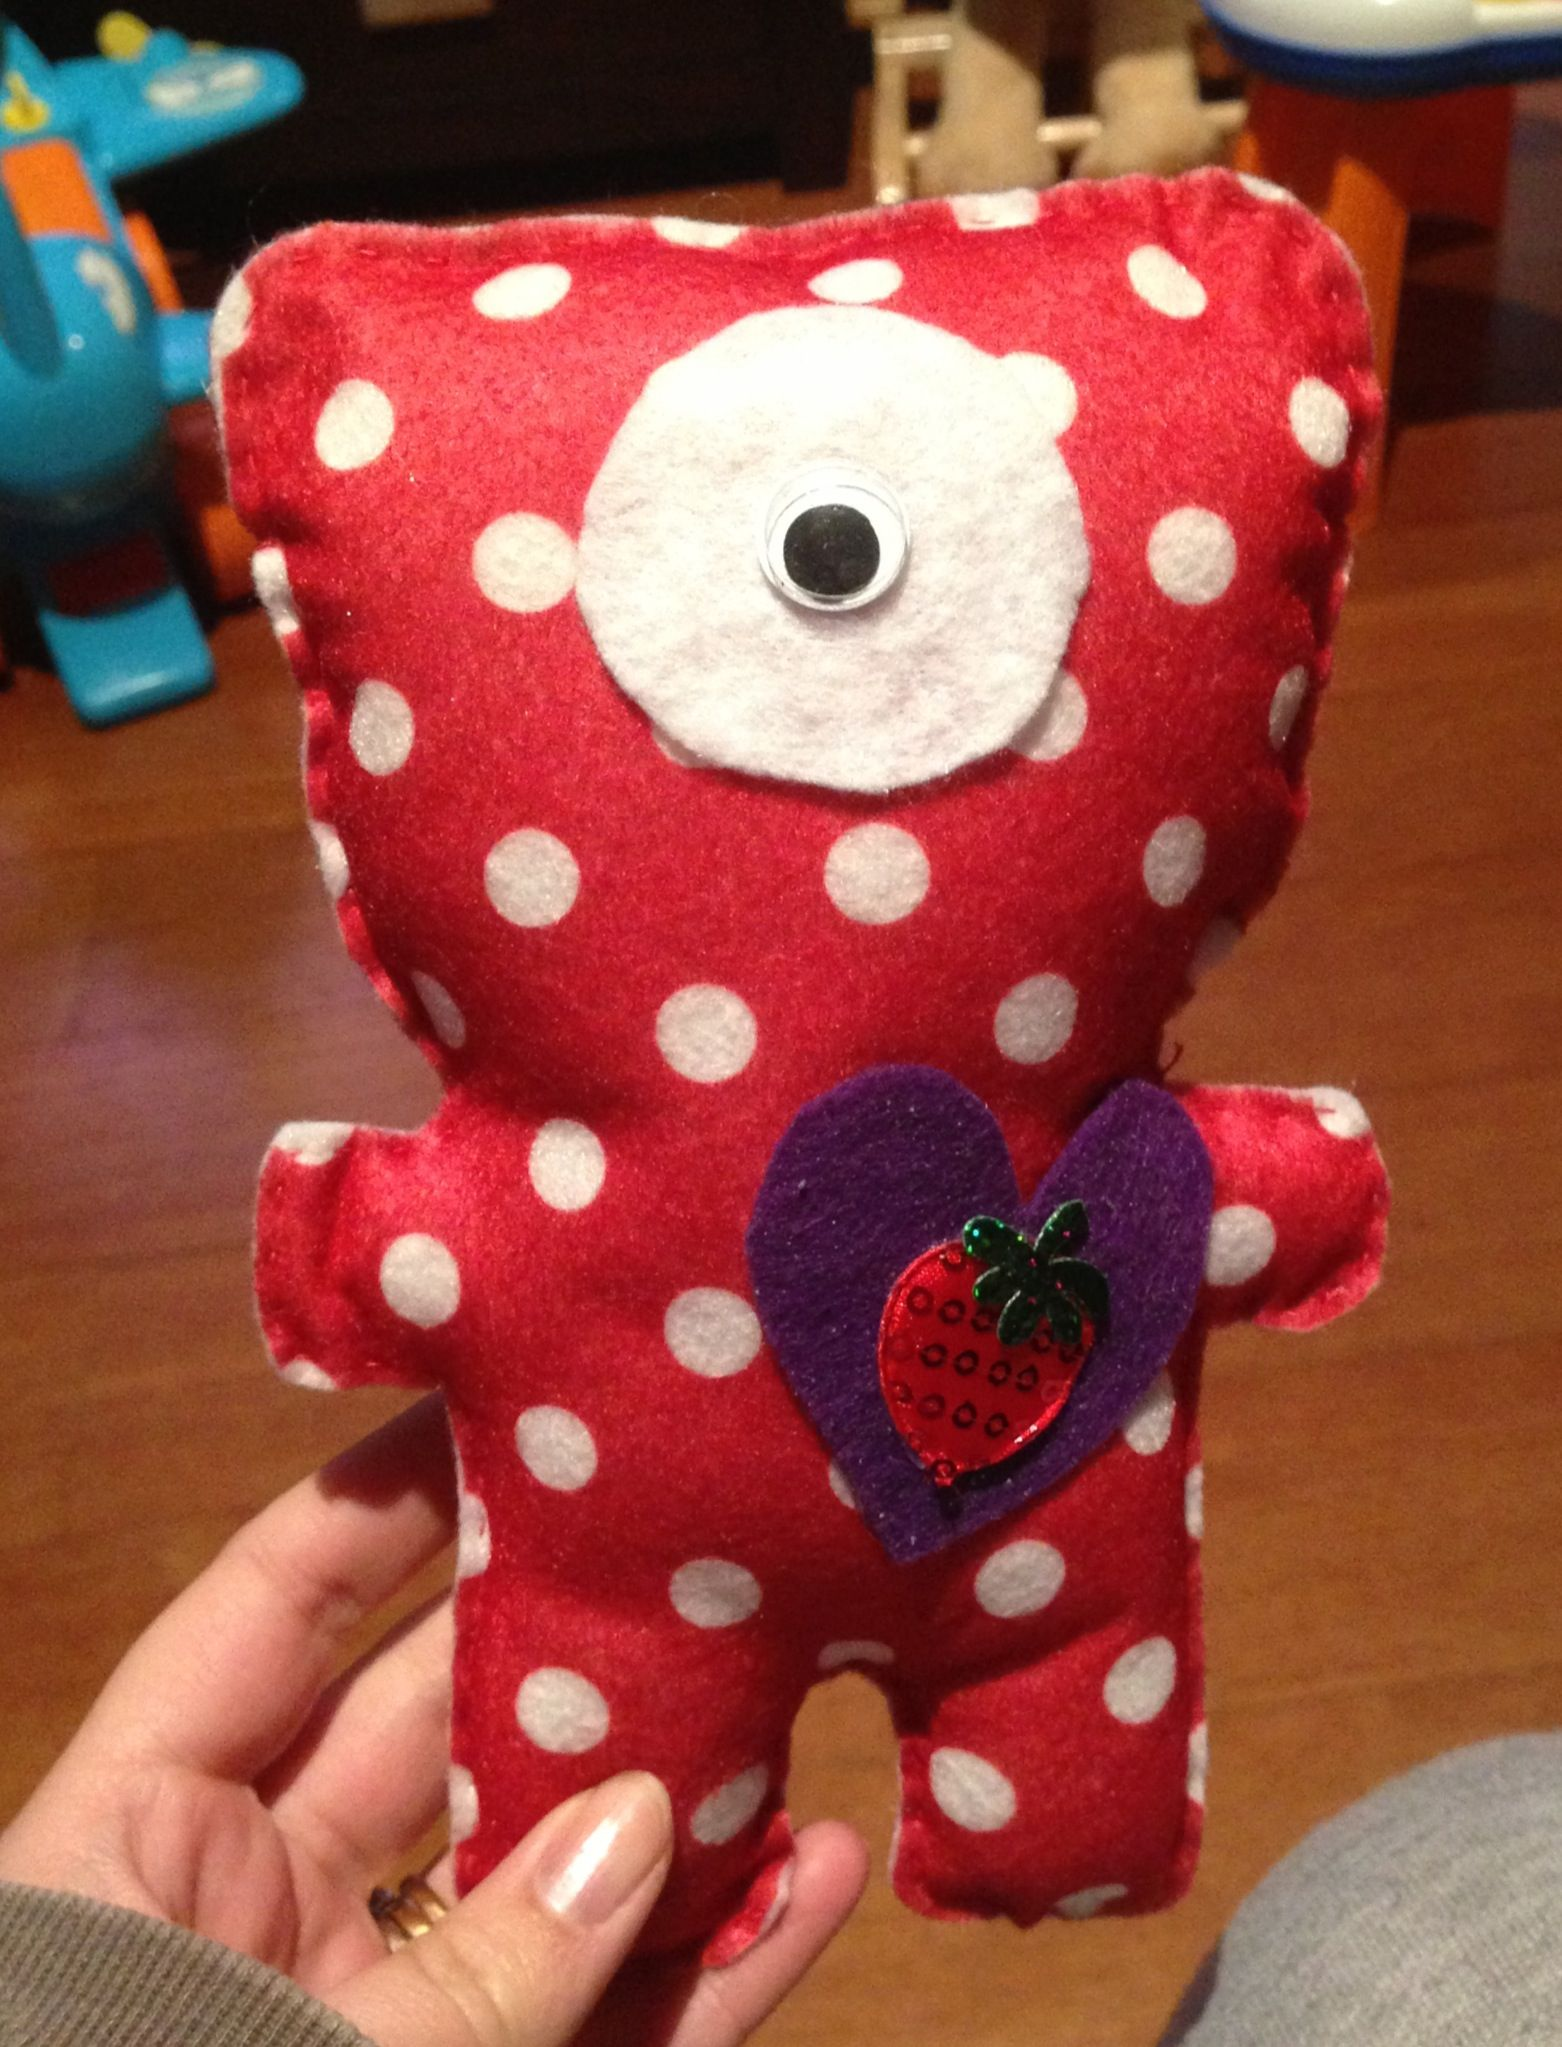 Polkadot felt monster with strawberry heart by Baby Blue Bows & Accessories